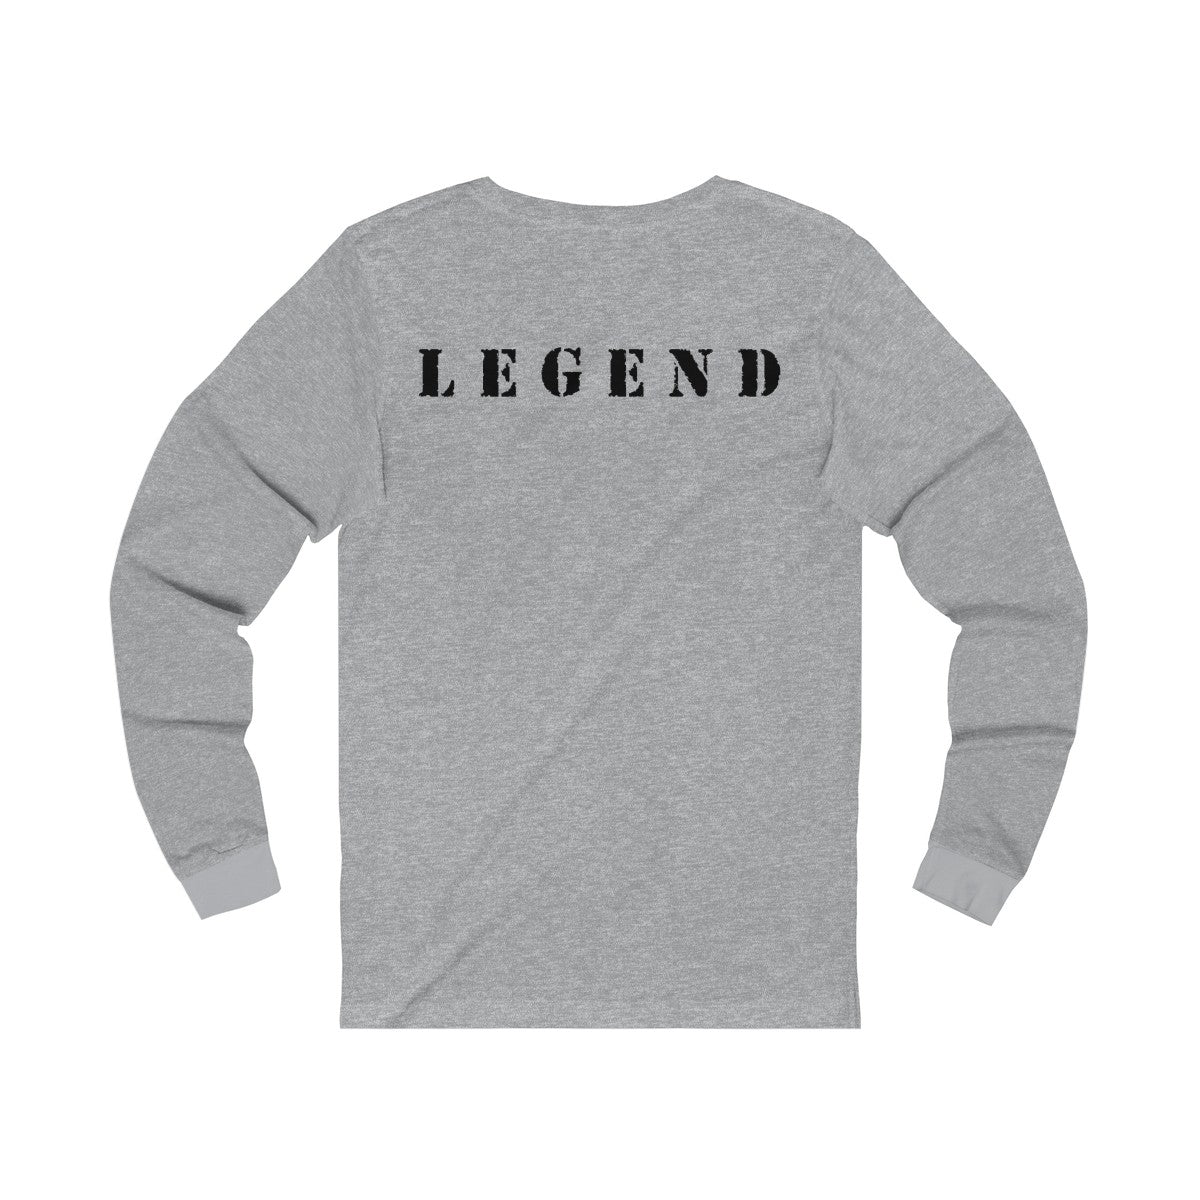 Men's LEGEND Long Sleeve Tee - Athletic Beings